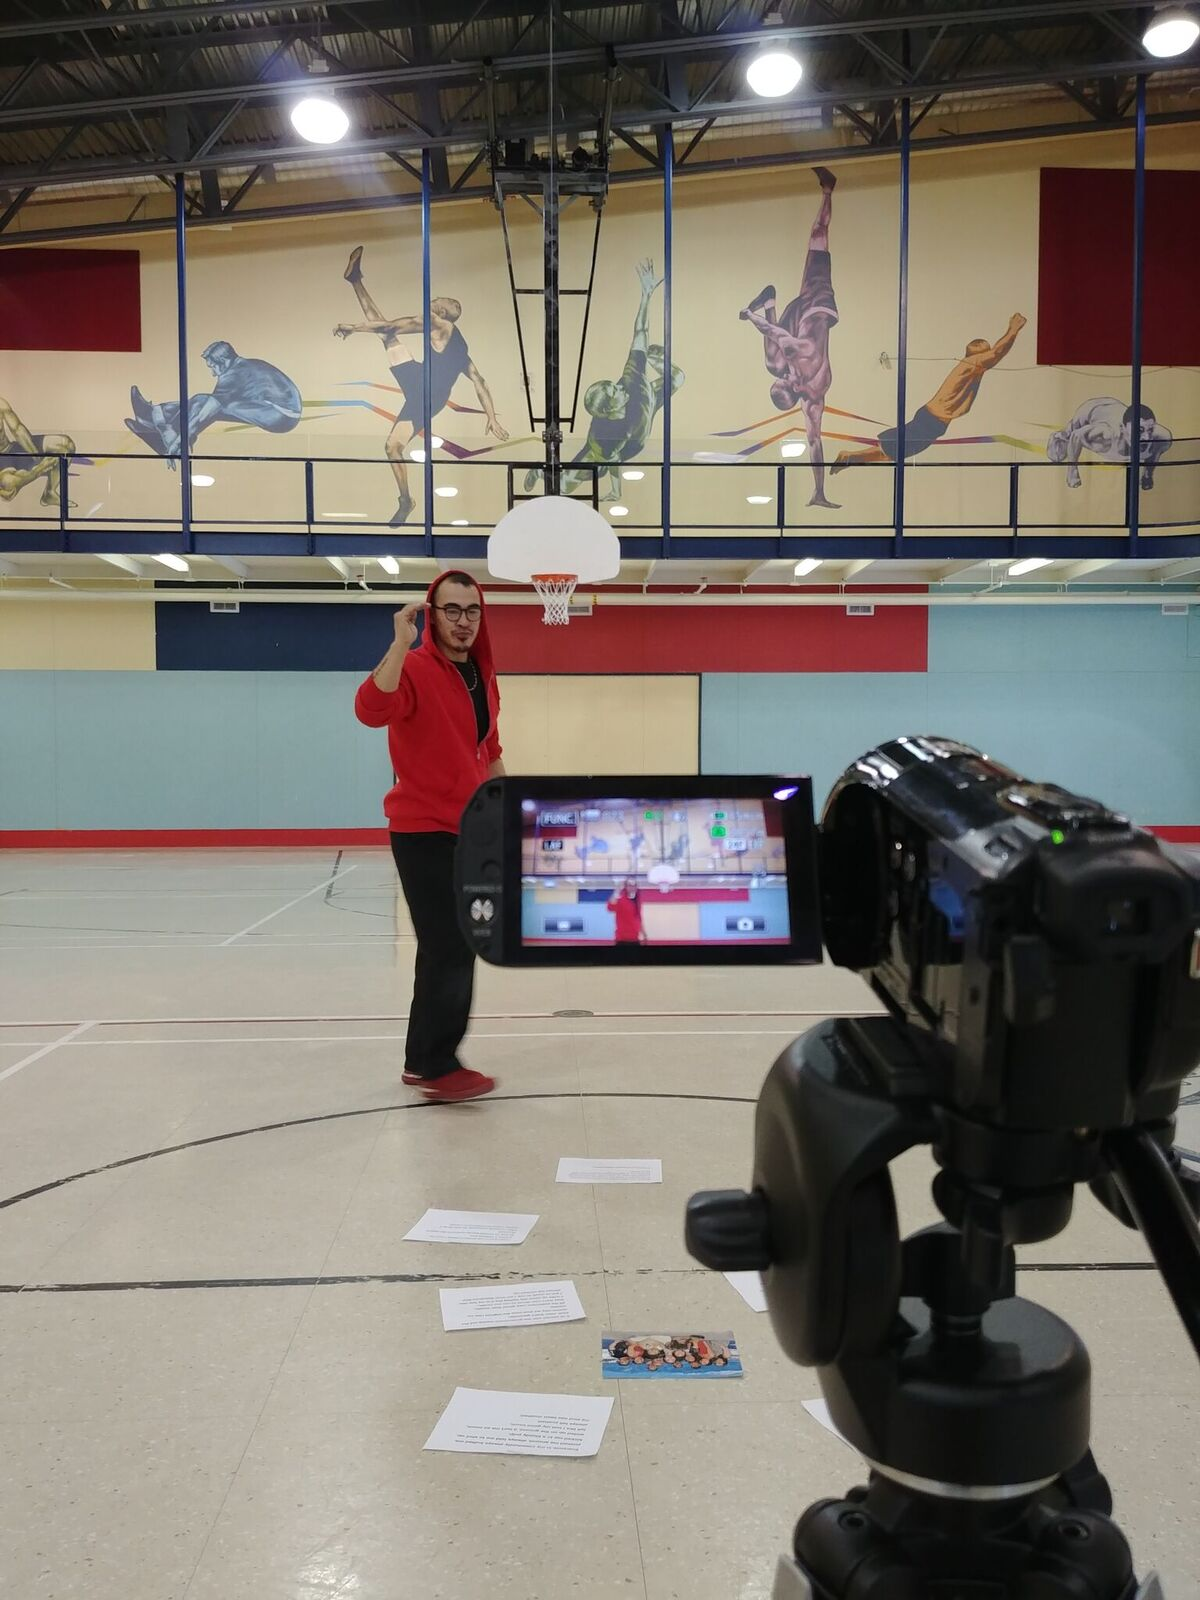 Filming in the community centre